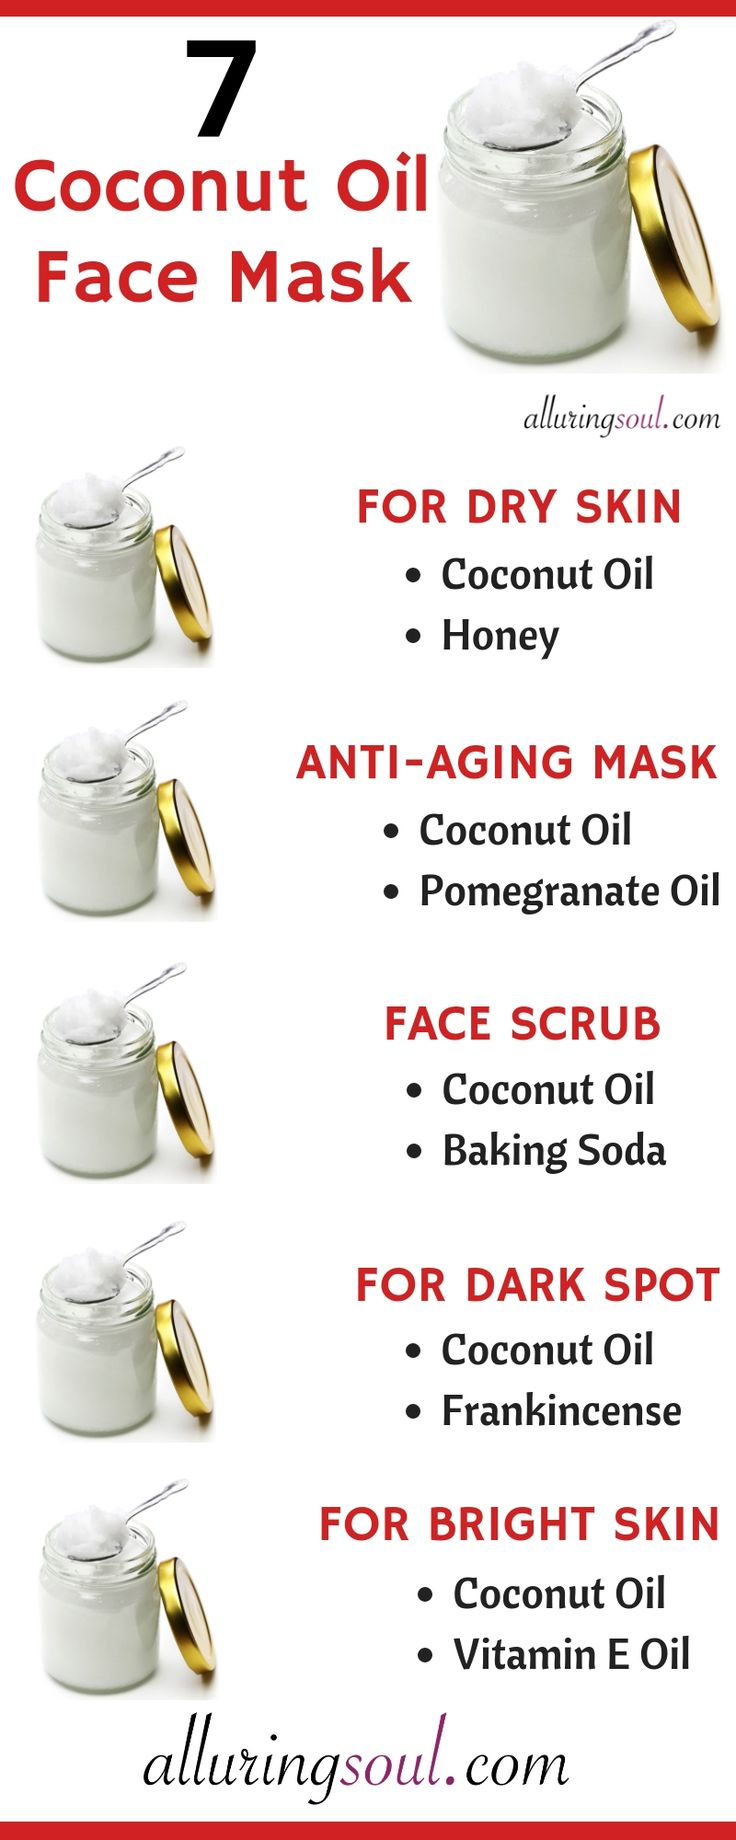 7 Coconut Oil Face Mask For Flawless Skin